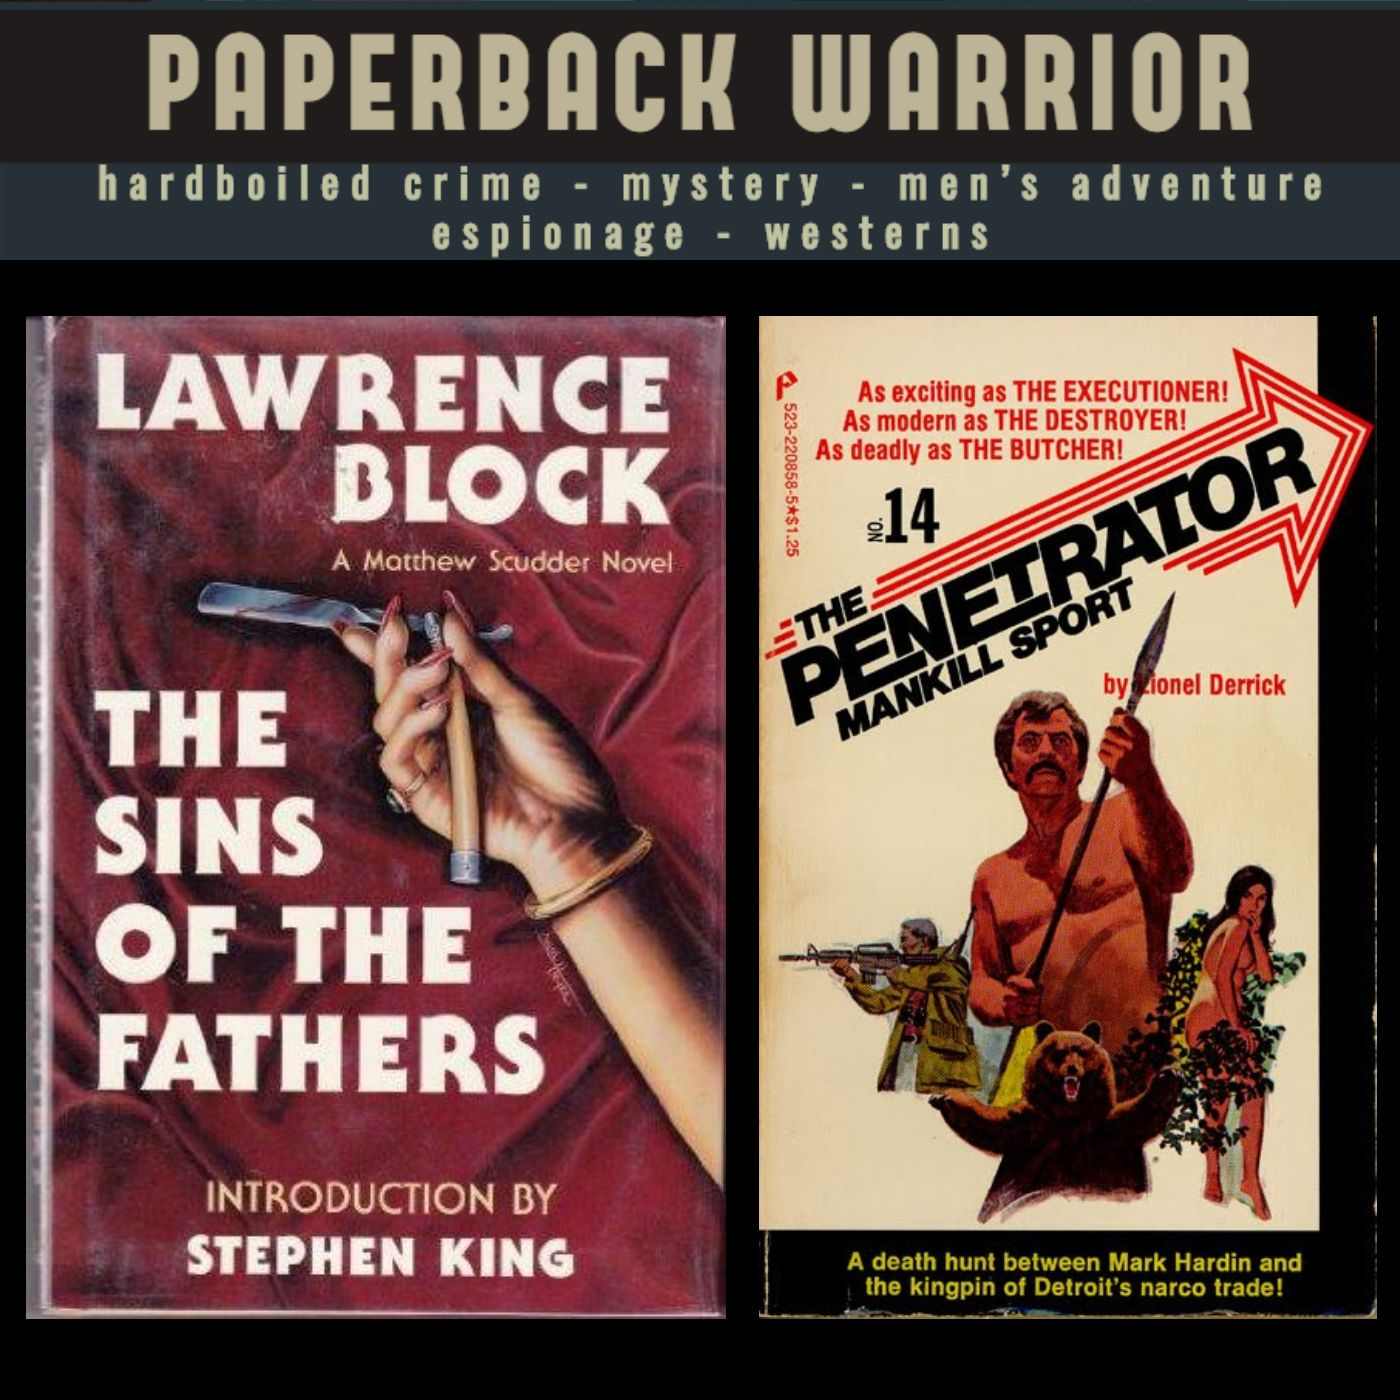 Episode 01: Welcome to Paperback Warrior